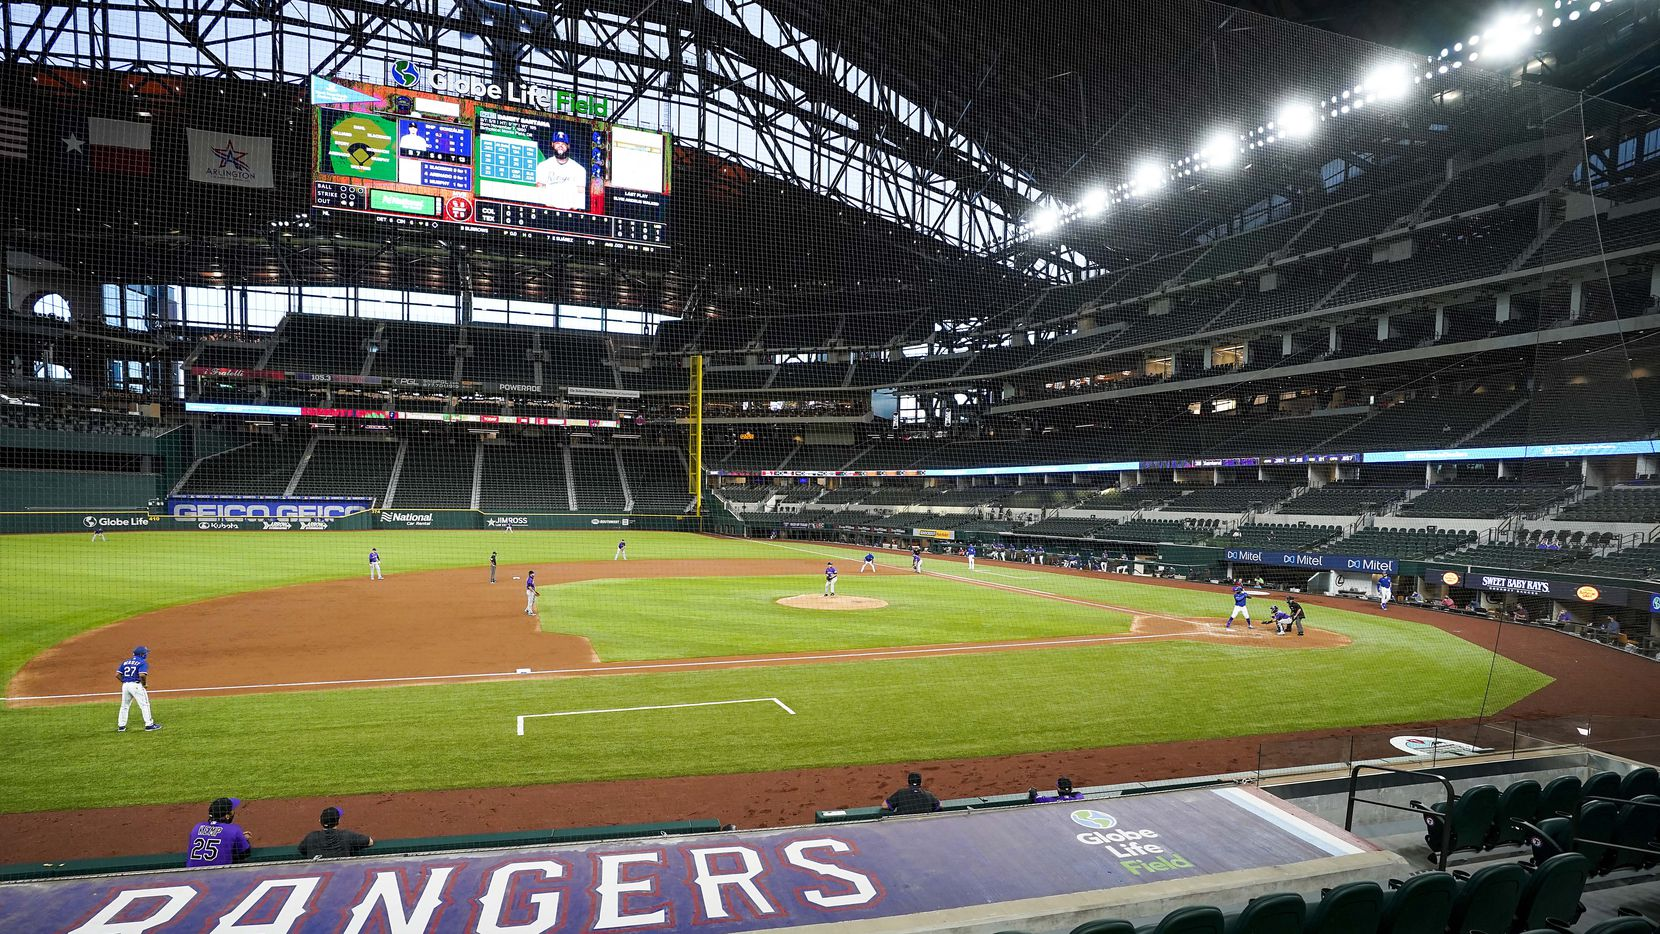 Texas Rangers outfielder Danny Santana bats during the second inning of an exhibition game against the Colorado Rockies at Globe Life Field on Tuesday, July 21, 2020.